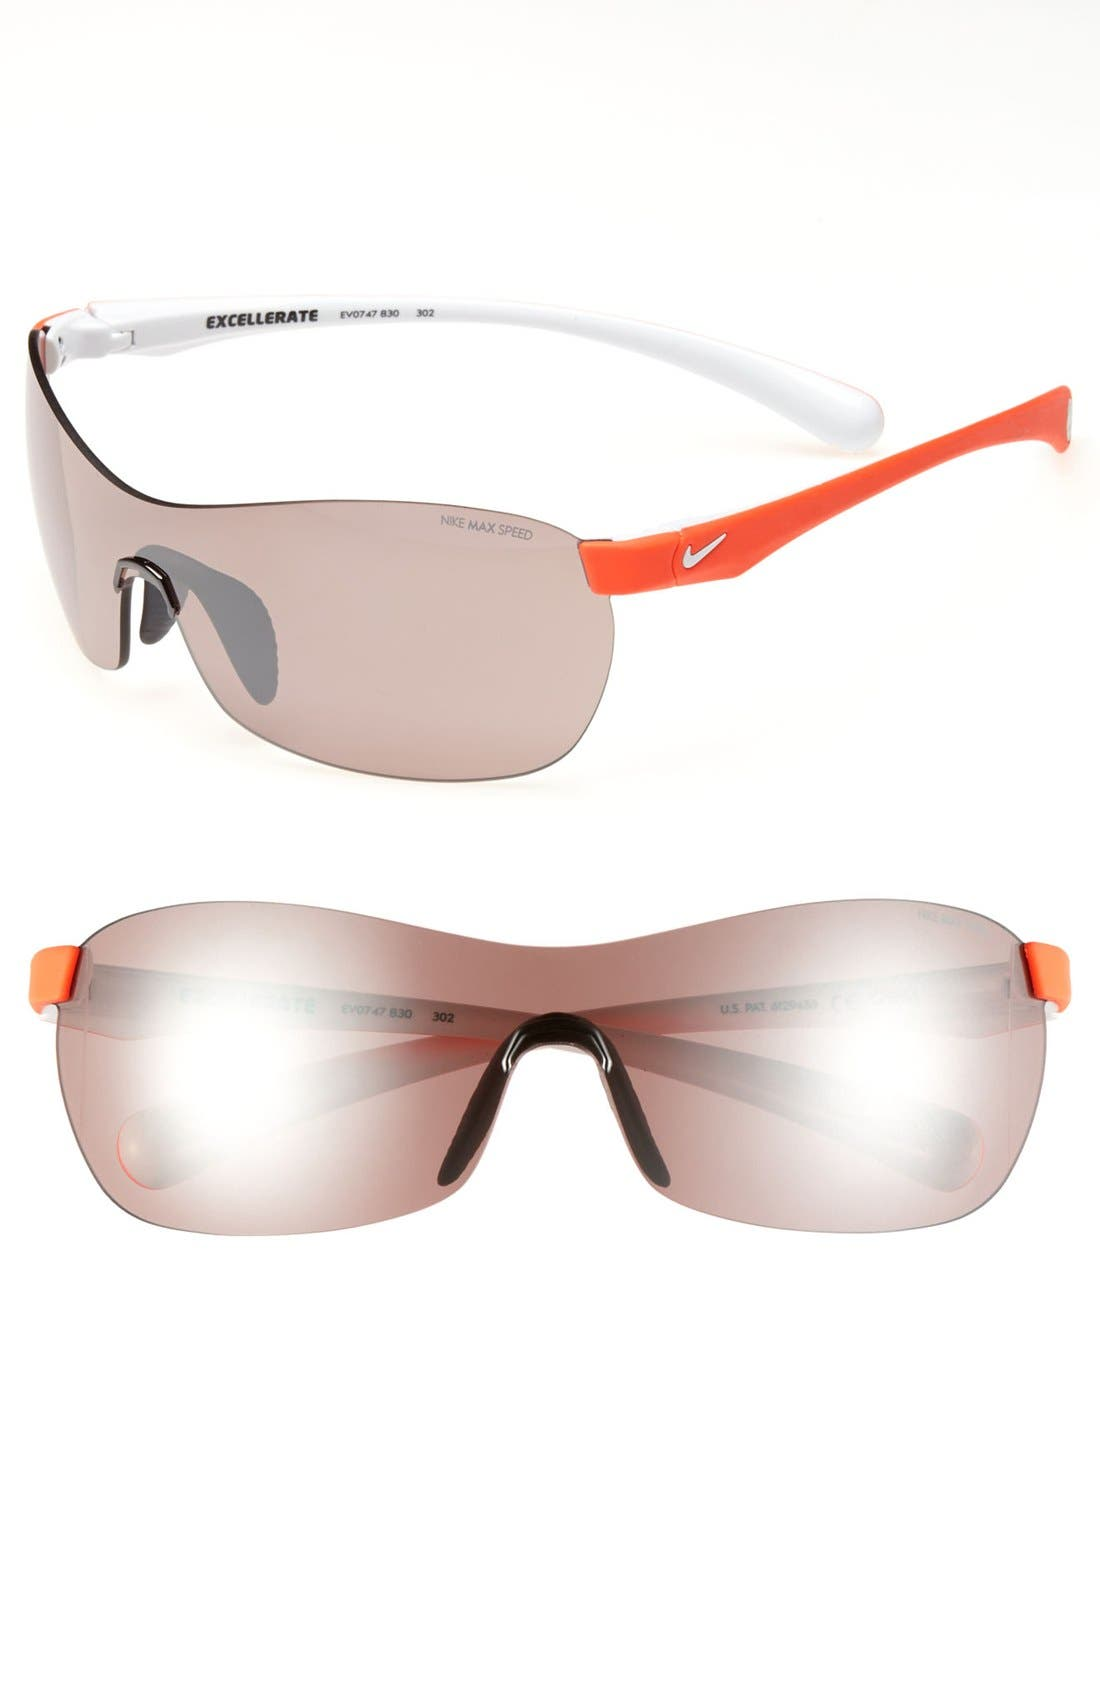 Alternate Image 1 Selected - Nike 'Excellerate' 62mm Polarized Sunglasses